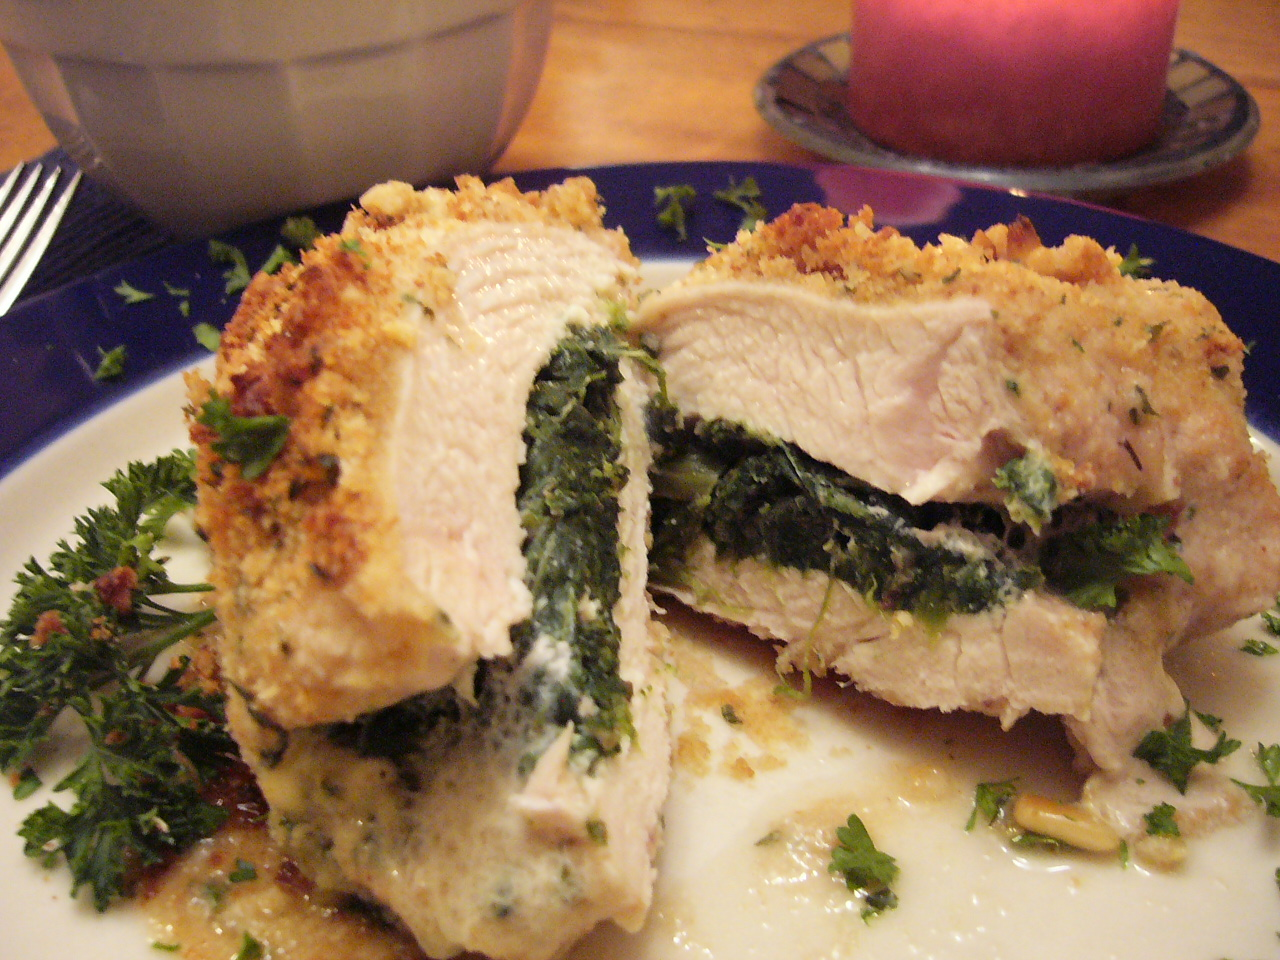 Stuffed Chicken Breast with Spinach and Feta | The Confidence Diet